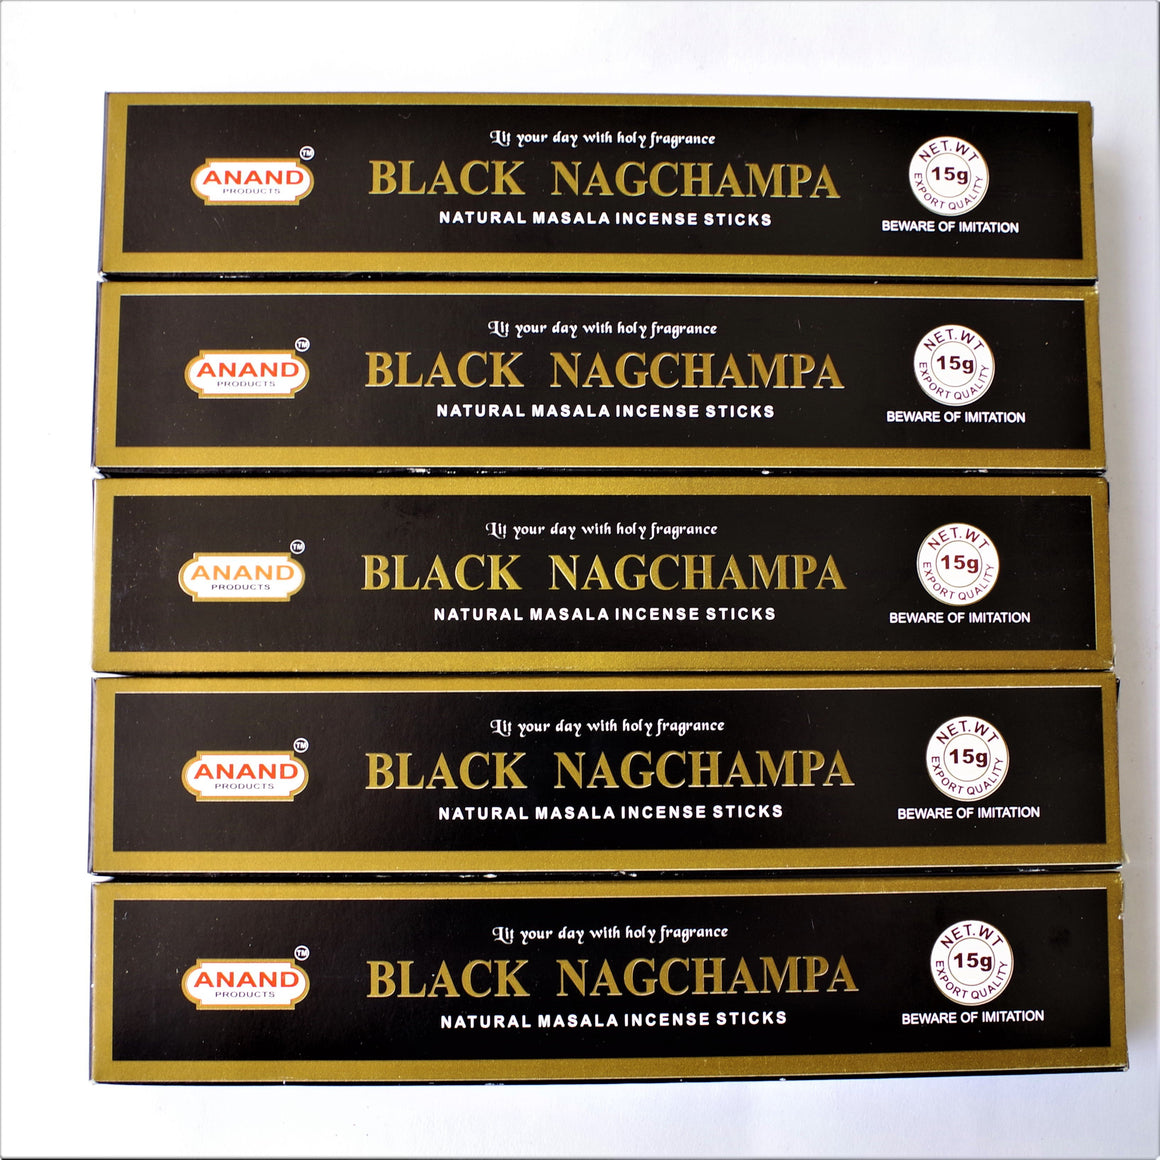 Incienso Anand Black Nag Champa